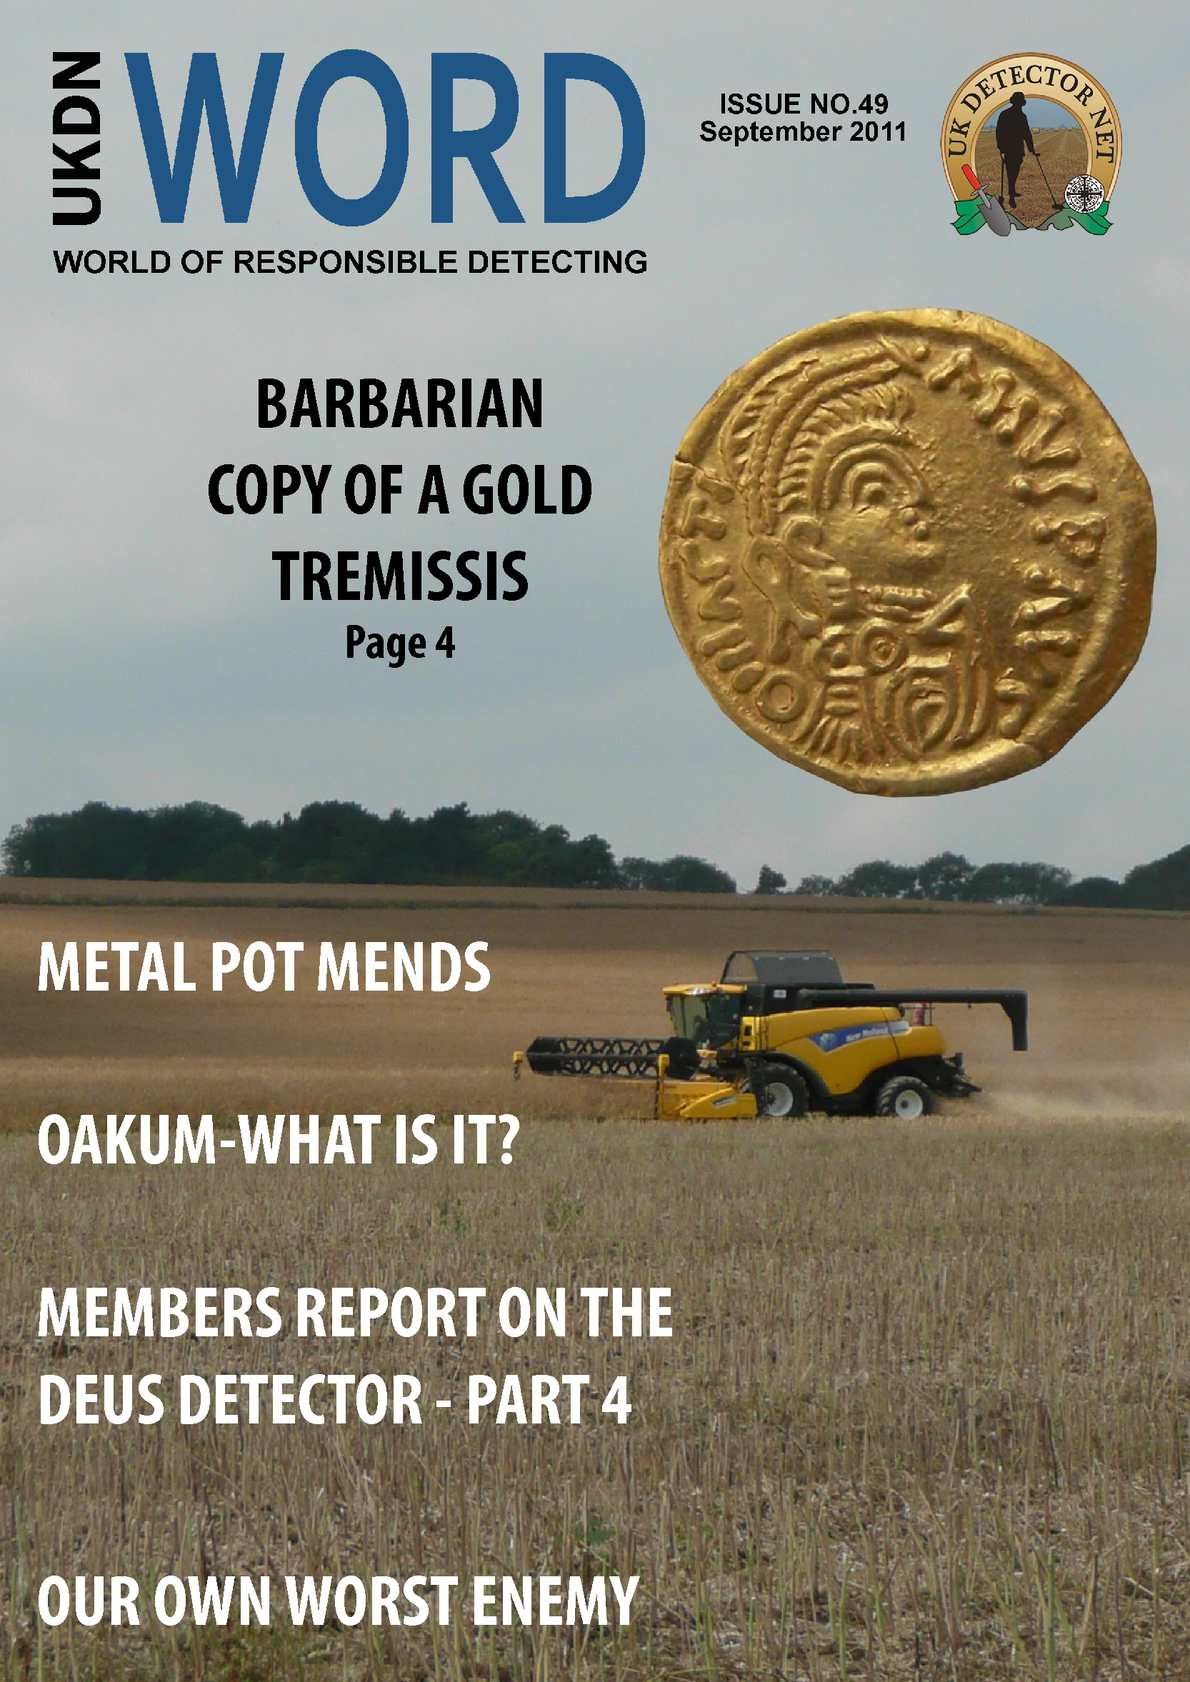 Issue 49 - Sept 2011 - UKDN Word